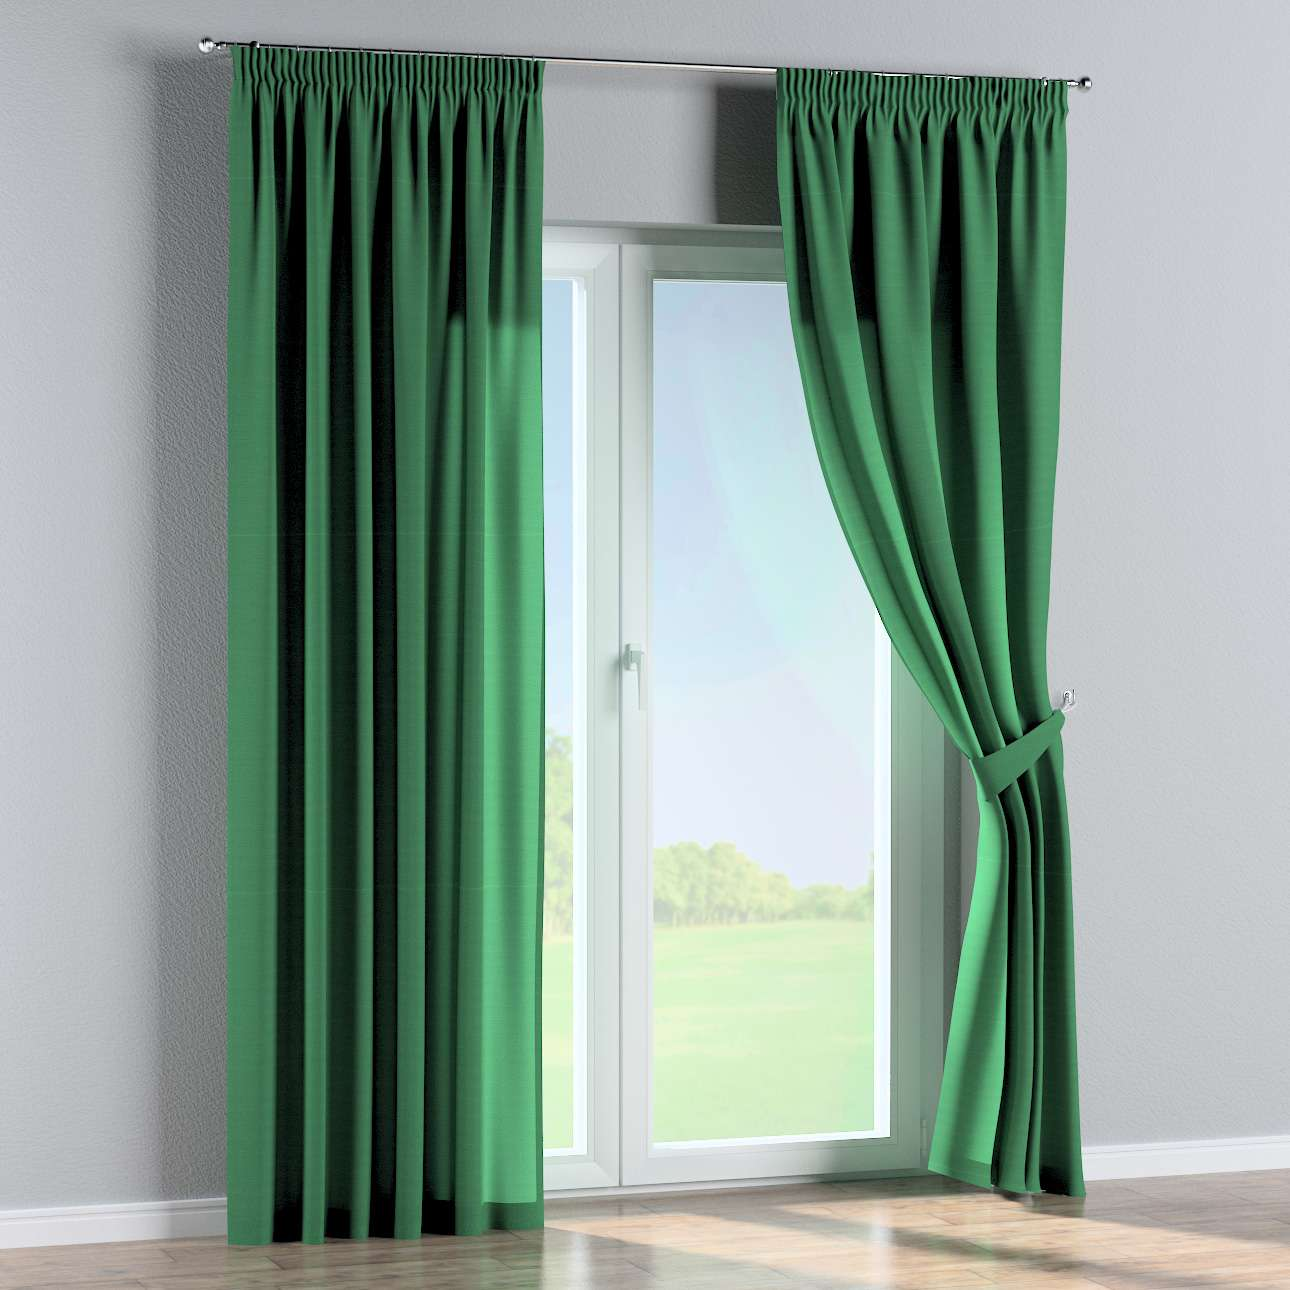 Pencil pleat curtains 130 x 260 cm (51 x 102 inch) in collection Loneta , fabric: 133-18